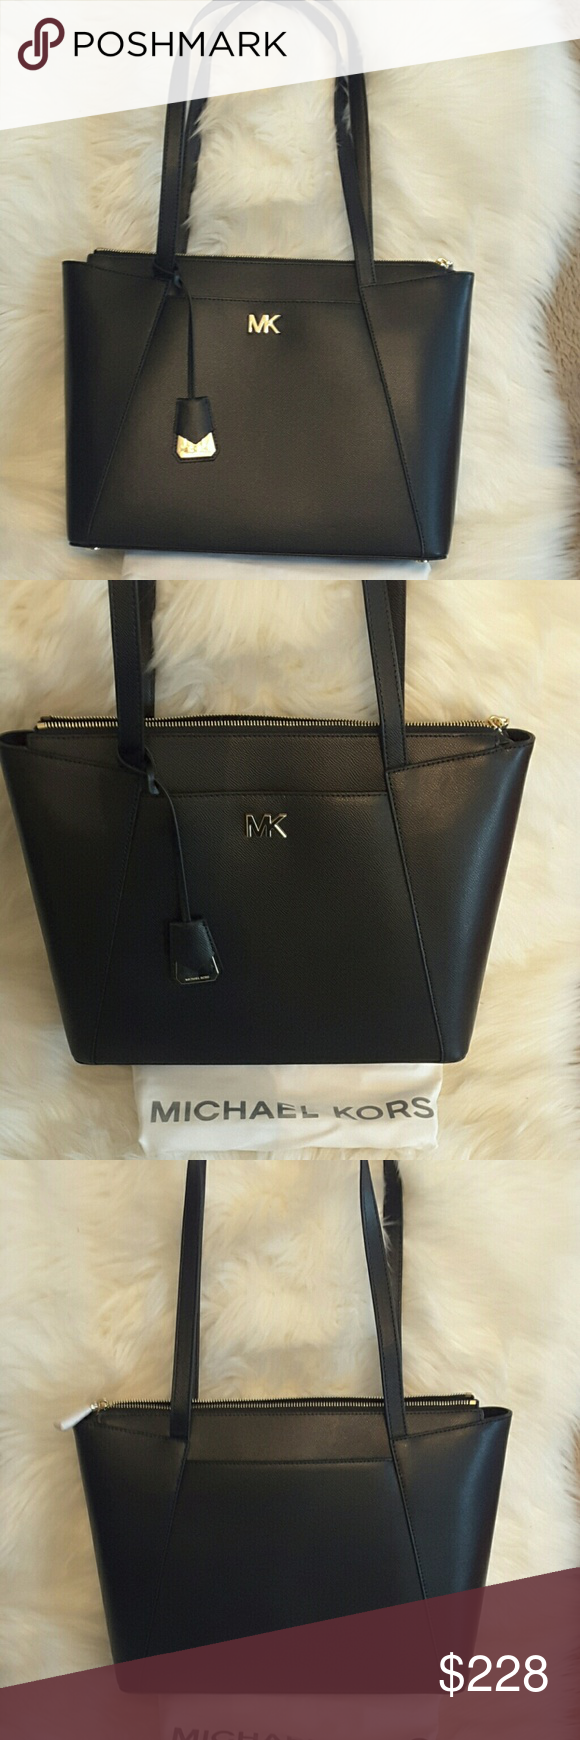 d67201a54729 Michael kors Maddie leather tote Michael kors Maddie black MD EW TZ TOTE  leather 30S8GN2T2L Approx meas bottom width 13